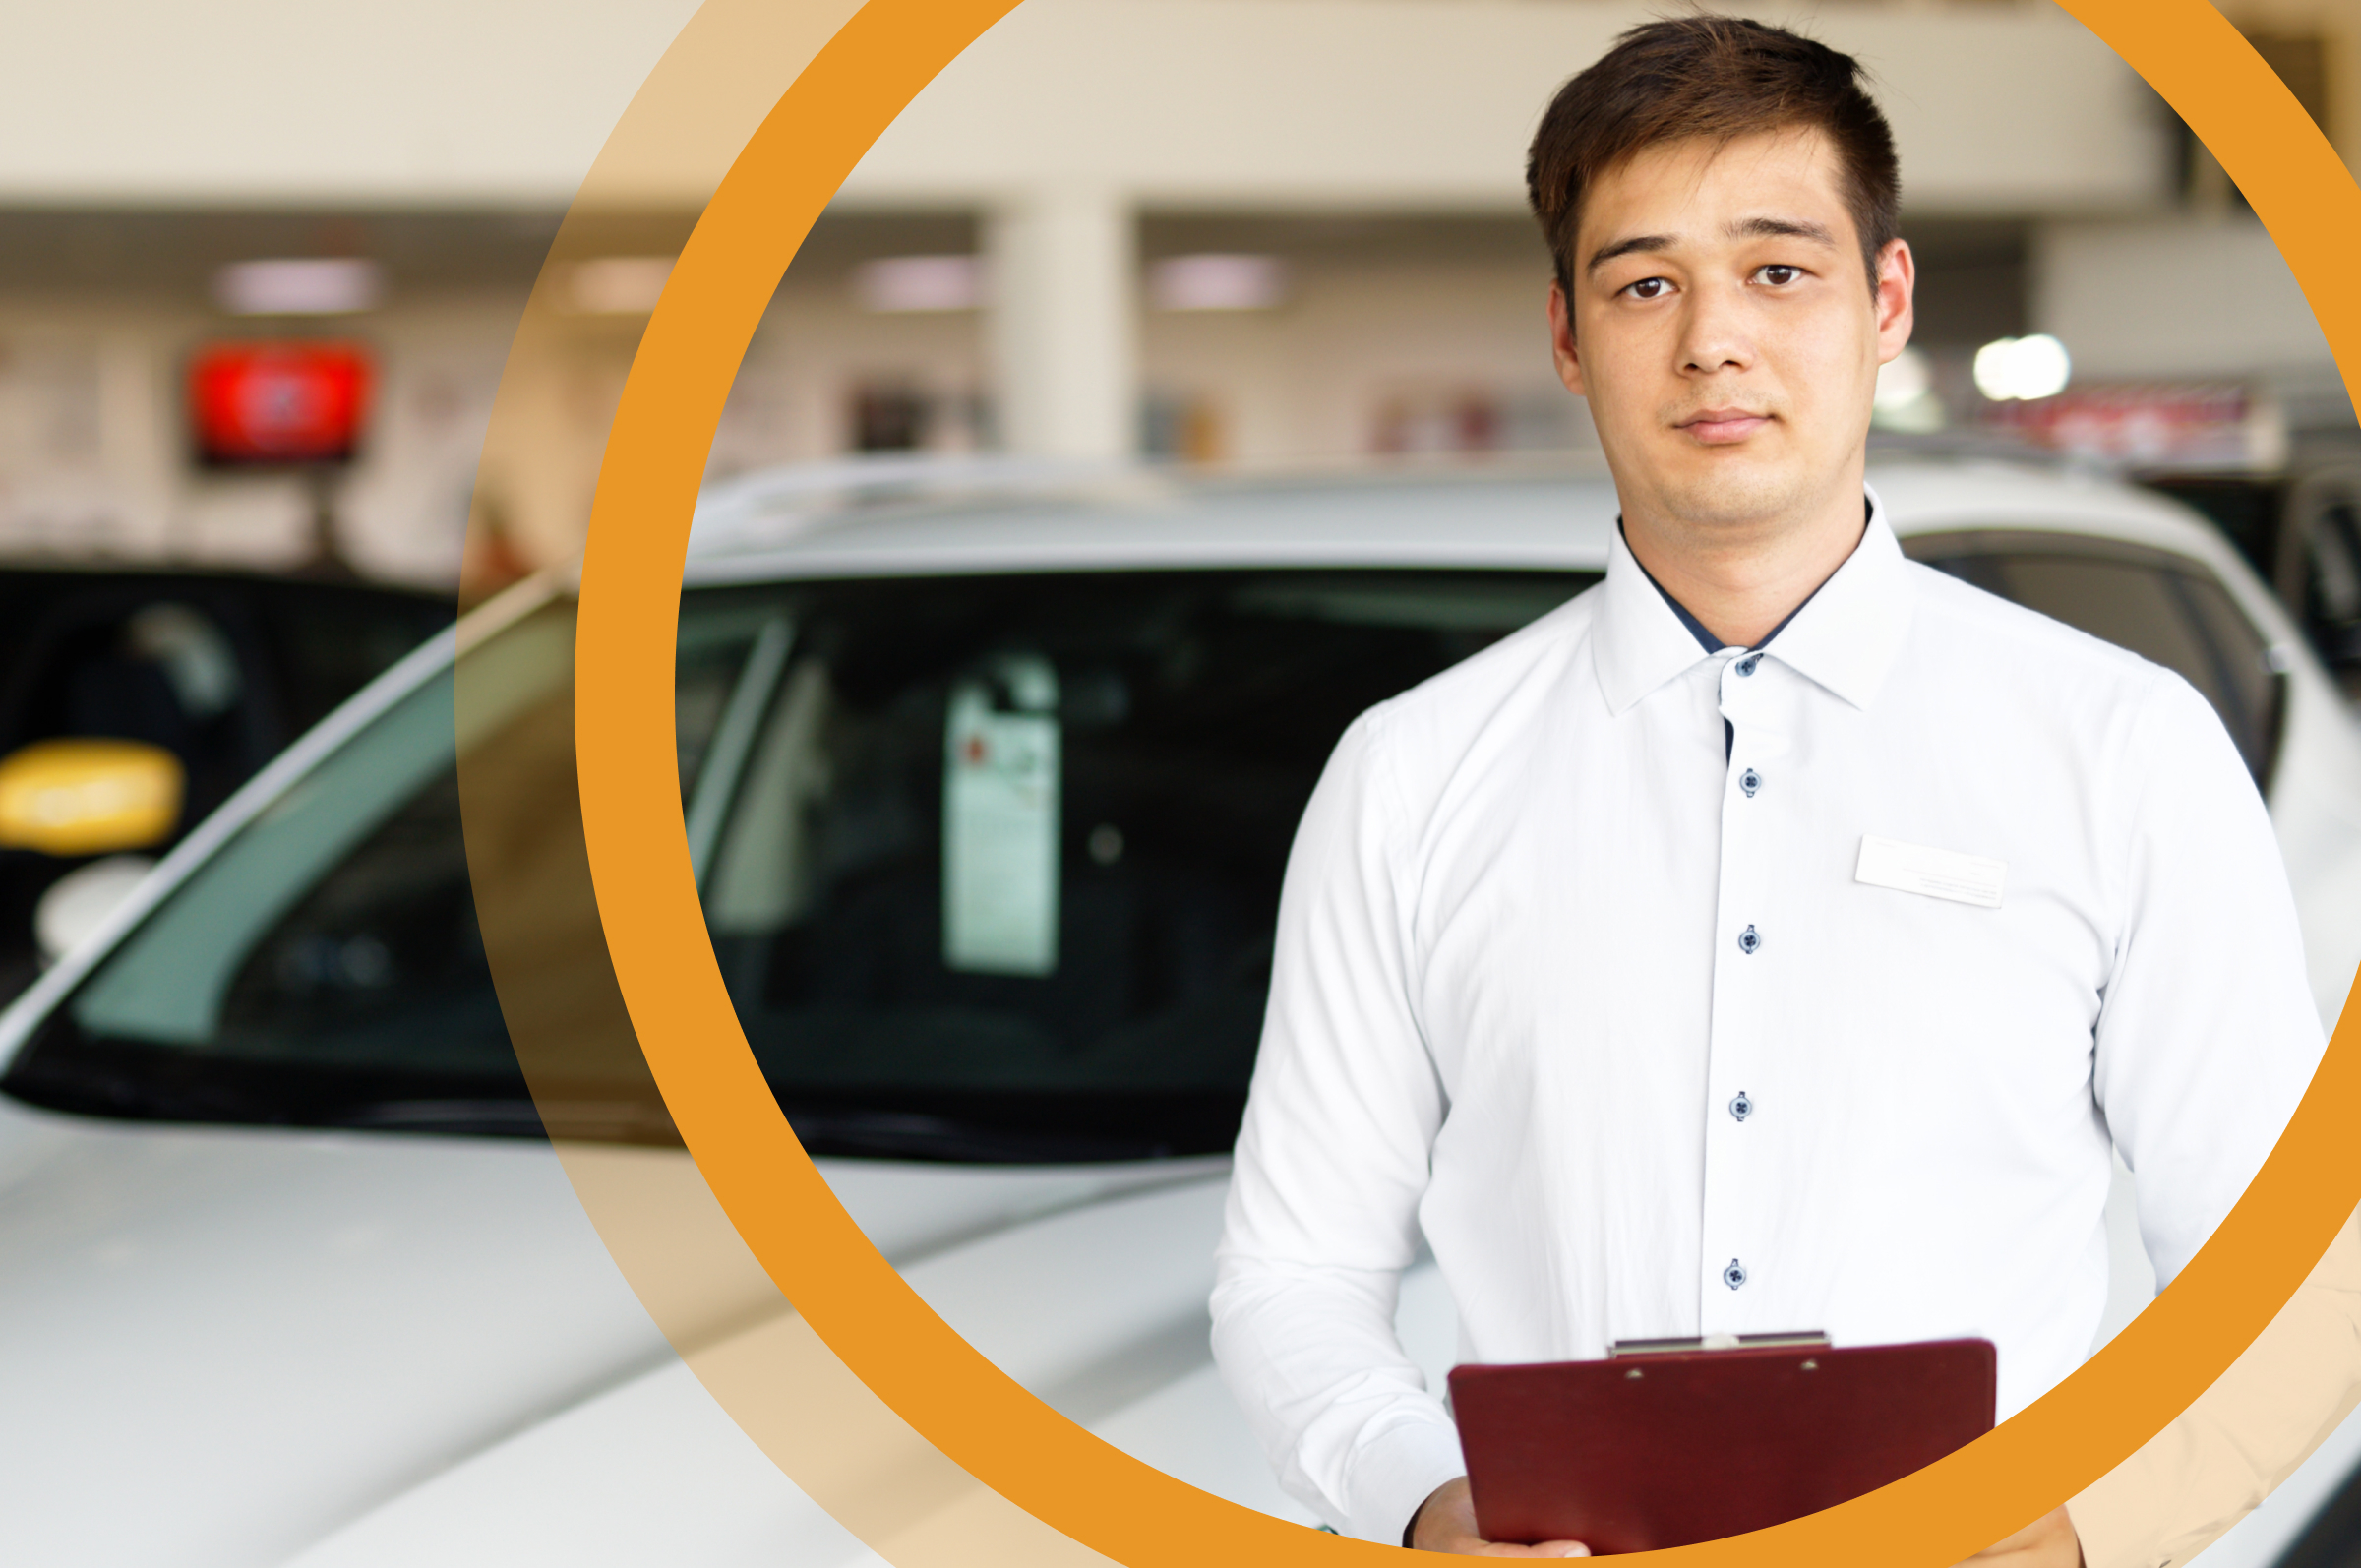 Employee turnover in the auto industry